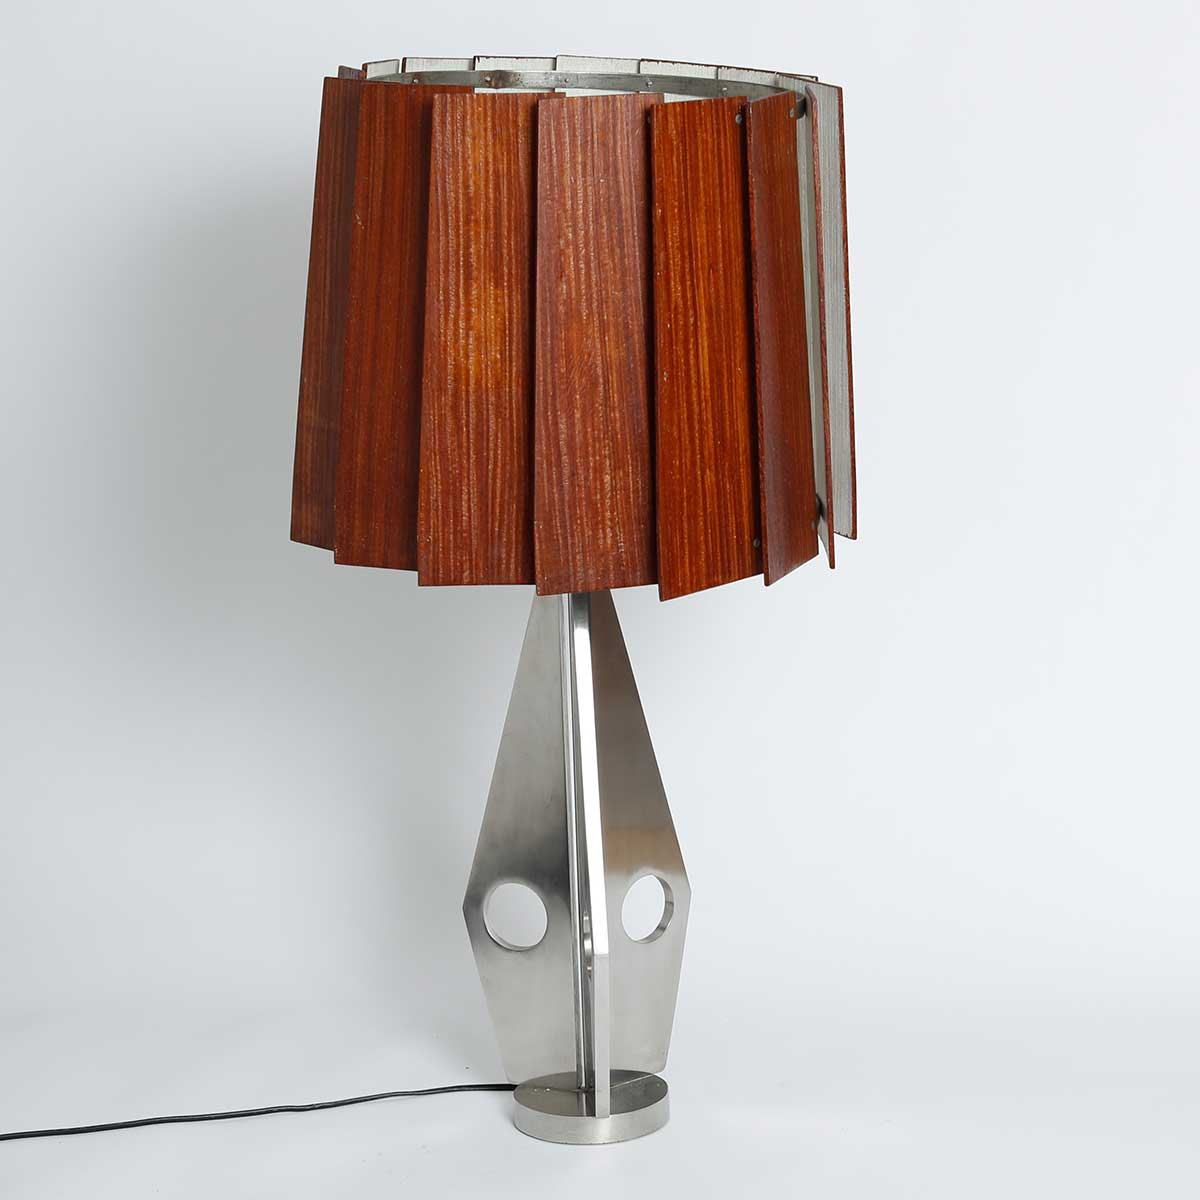 Galerie Insighter Paris vintage lamp